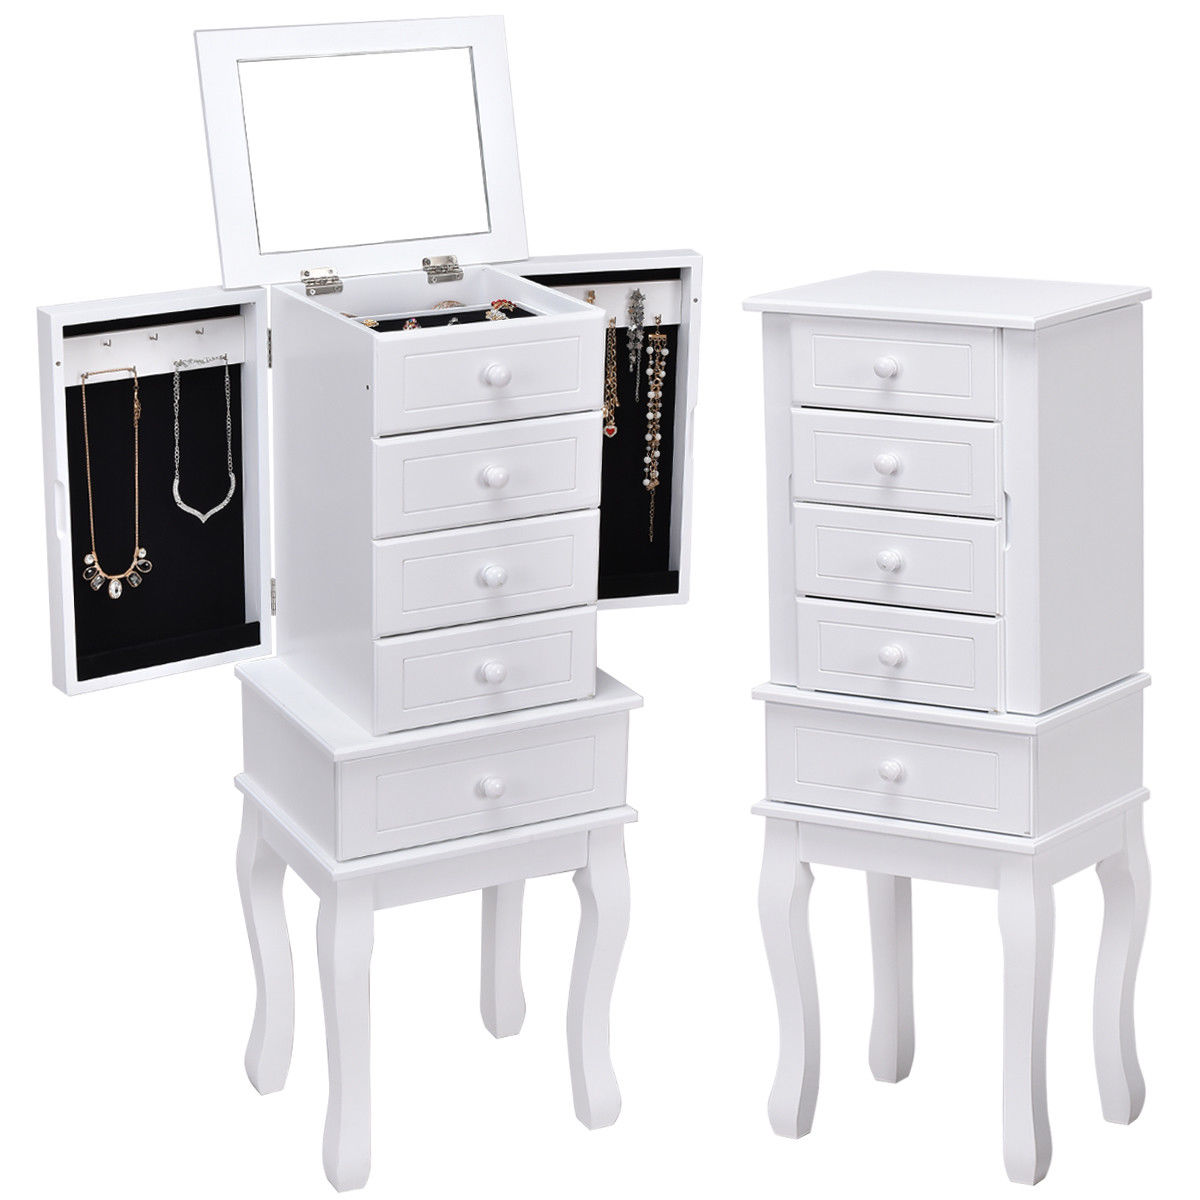 Gymax Jewelry Cabinet Armoire Box Mirrored Storage Chest Stand Organizer